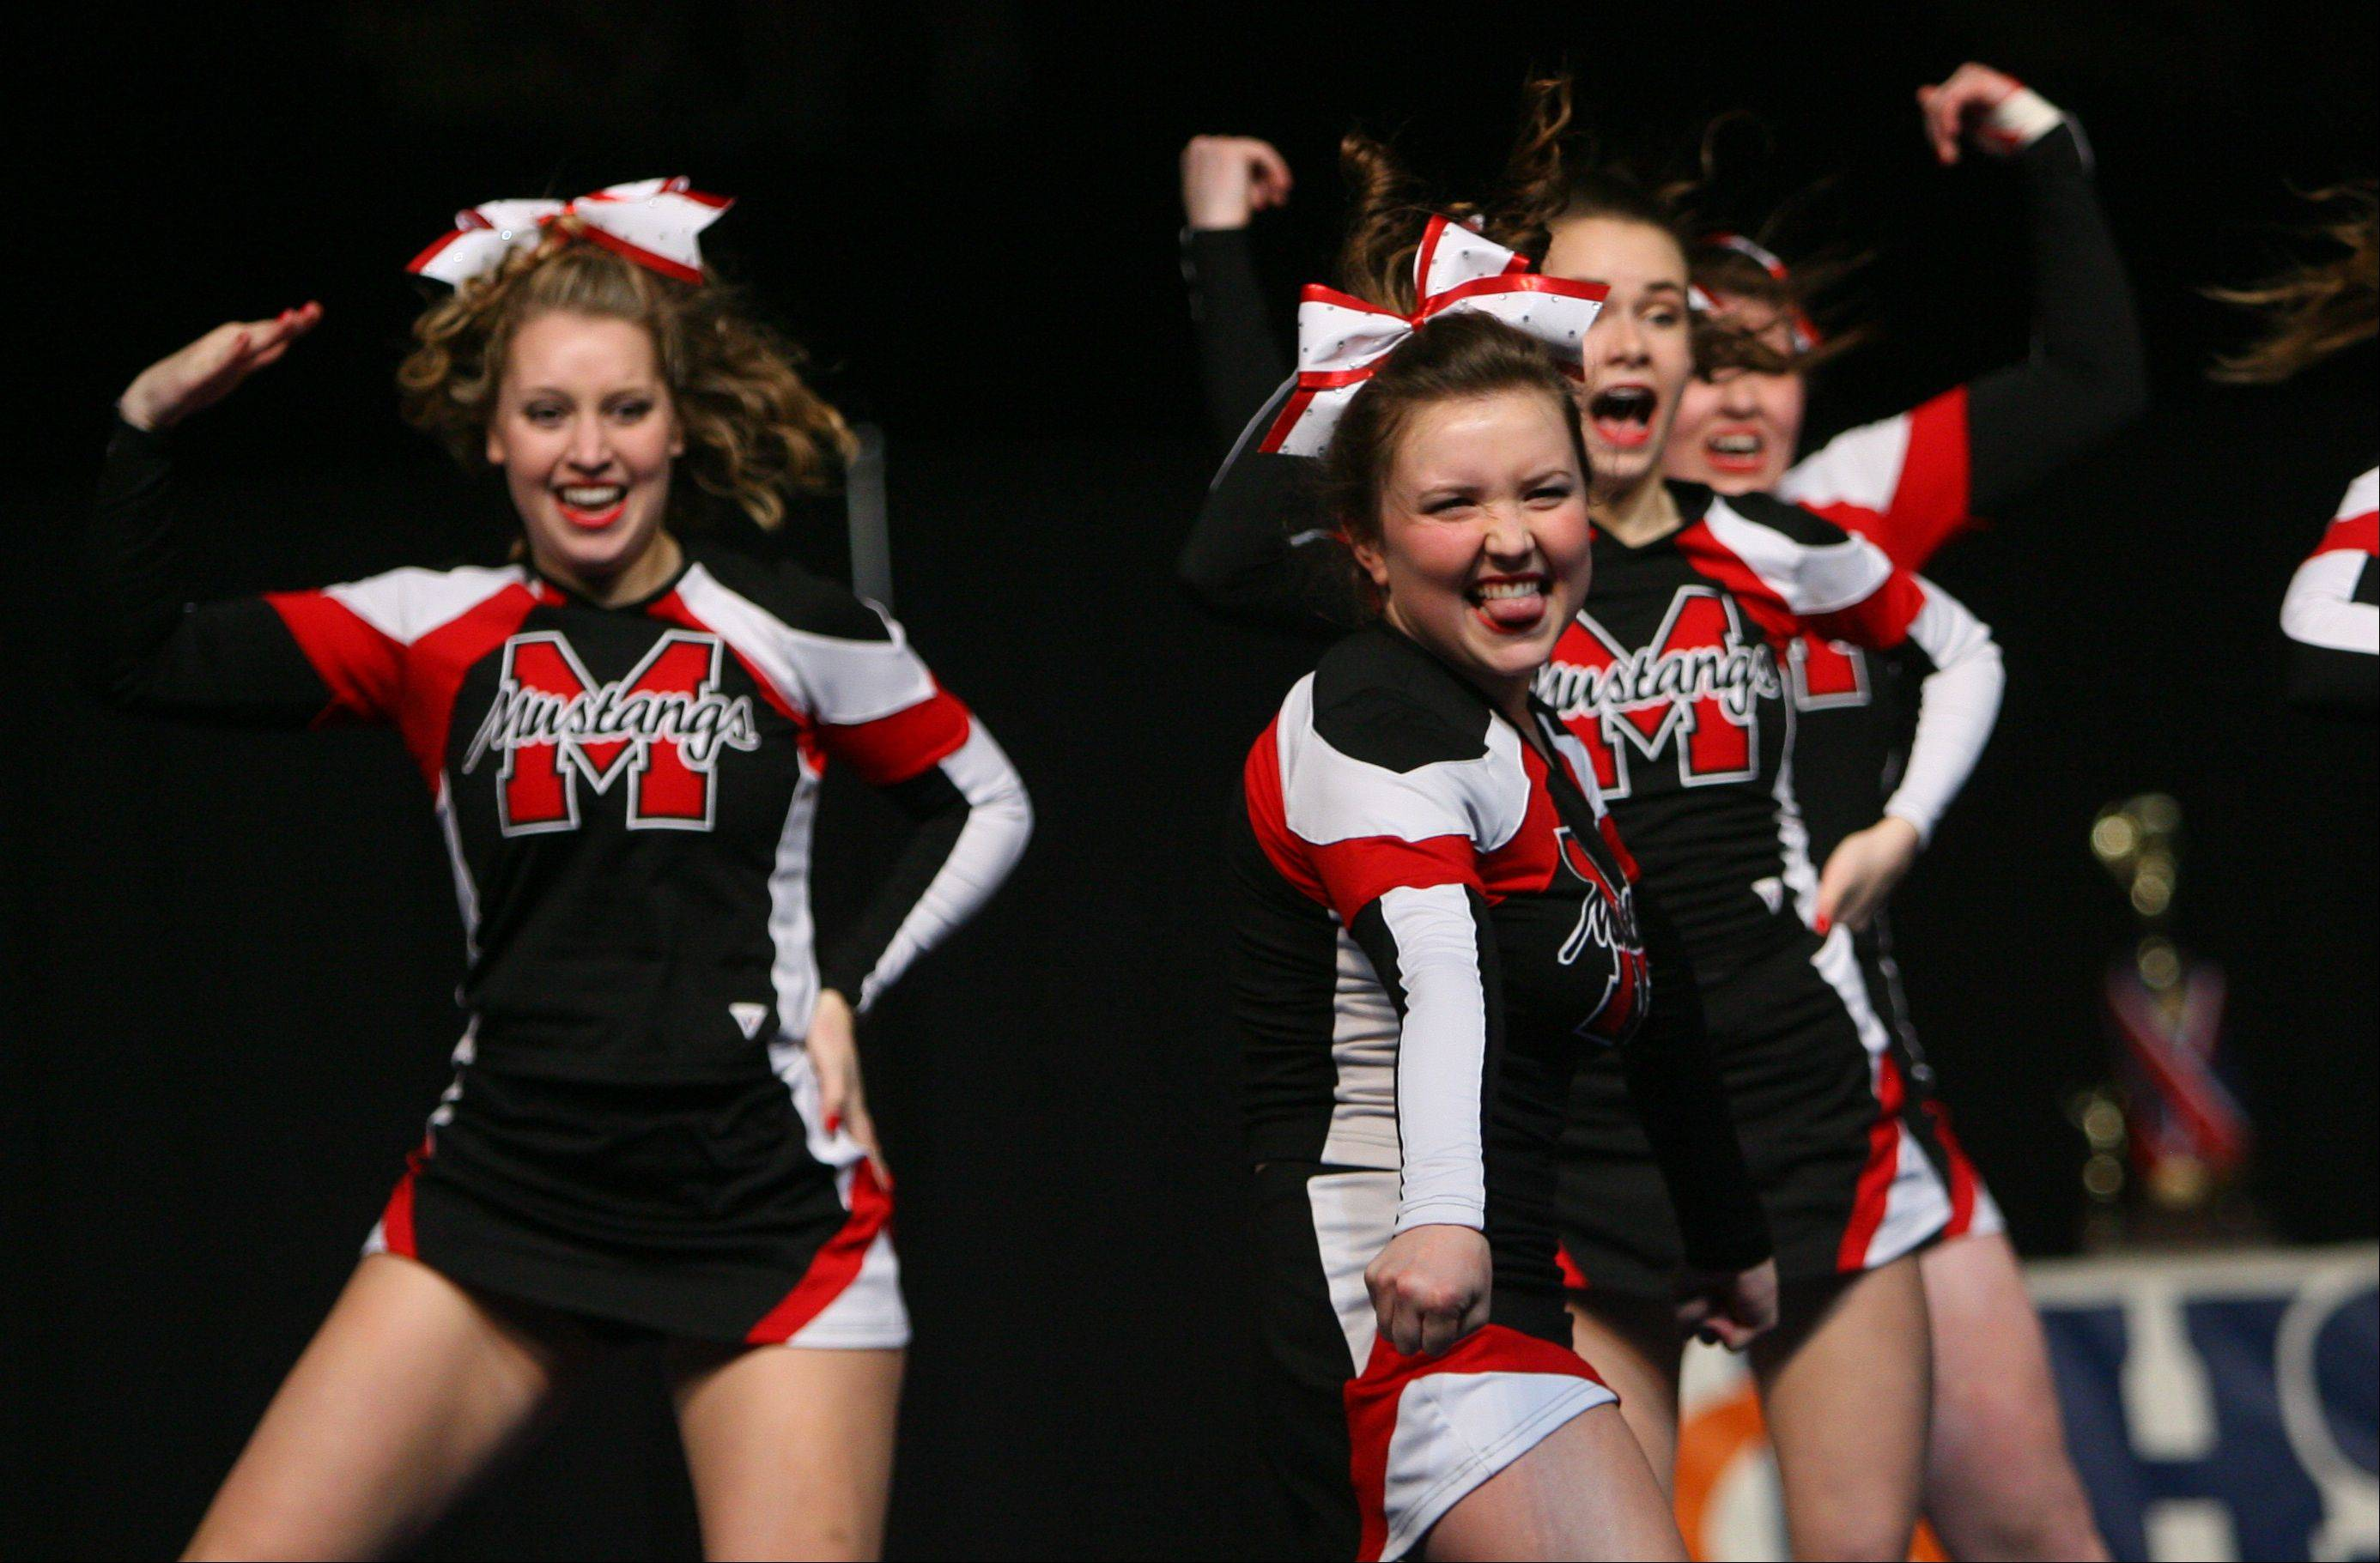 Mundelein High School competes in the in the Competitive Cheerleading prelims on Friday at the U.S. Cellular Coliseum in Bloomington.